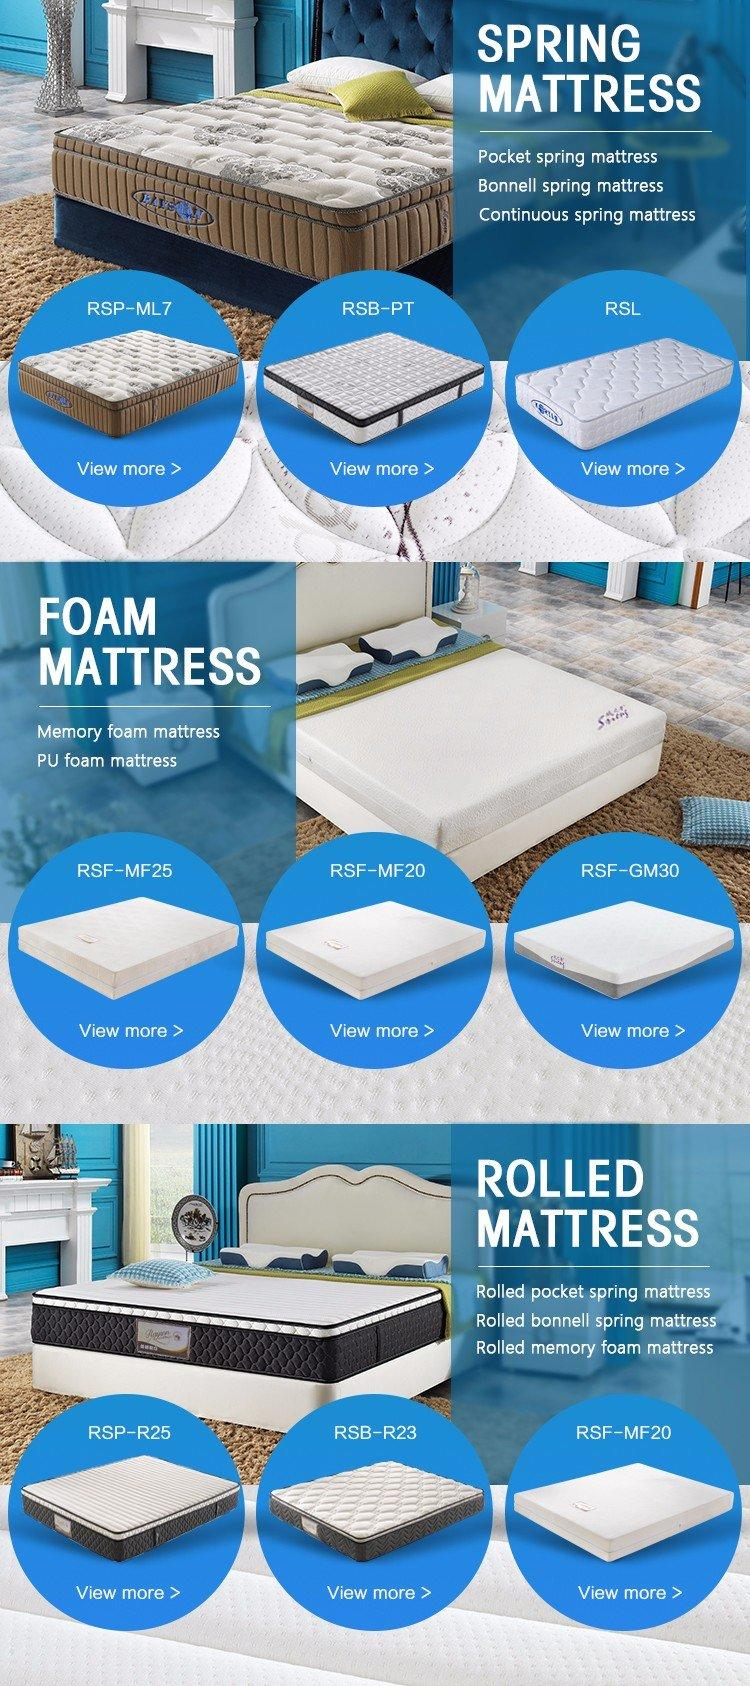 health 13.5 gauge bonnell spring mattress supplier for villa Rayson Mattress